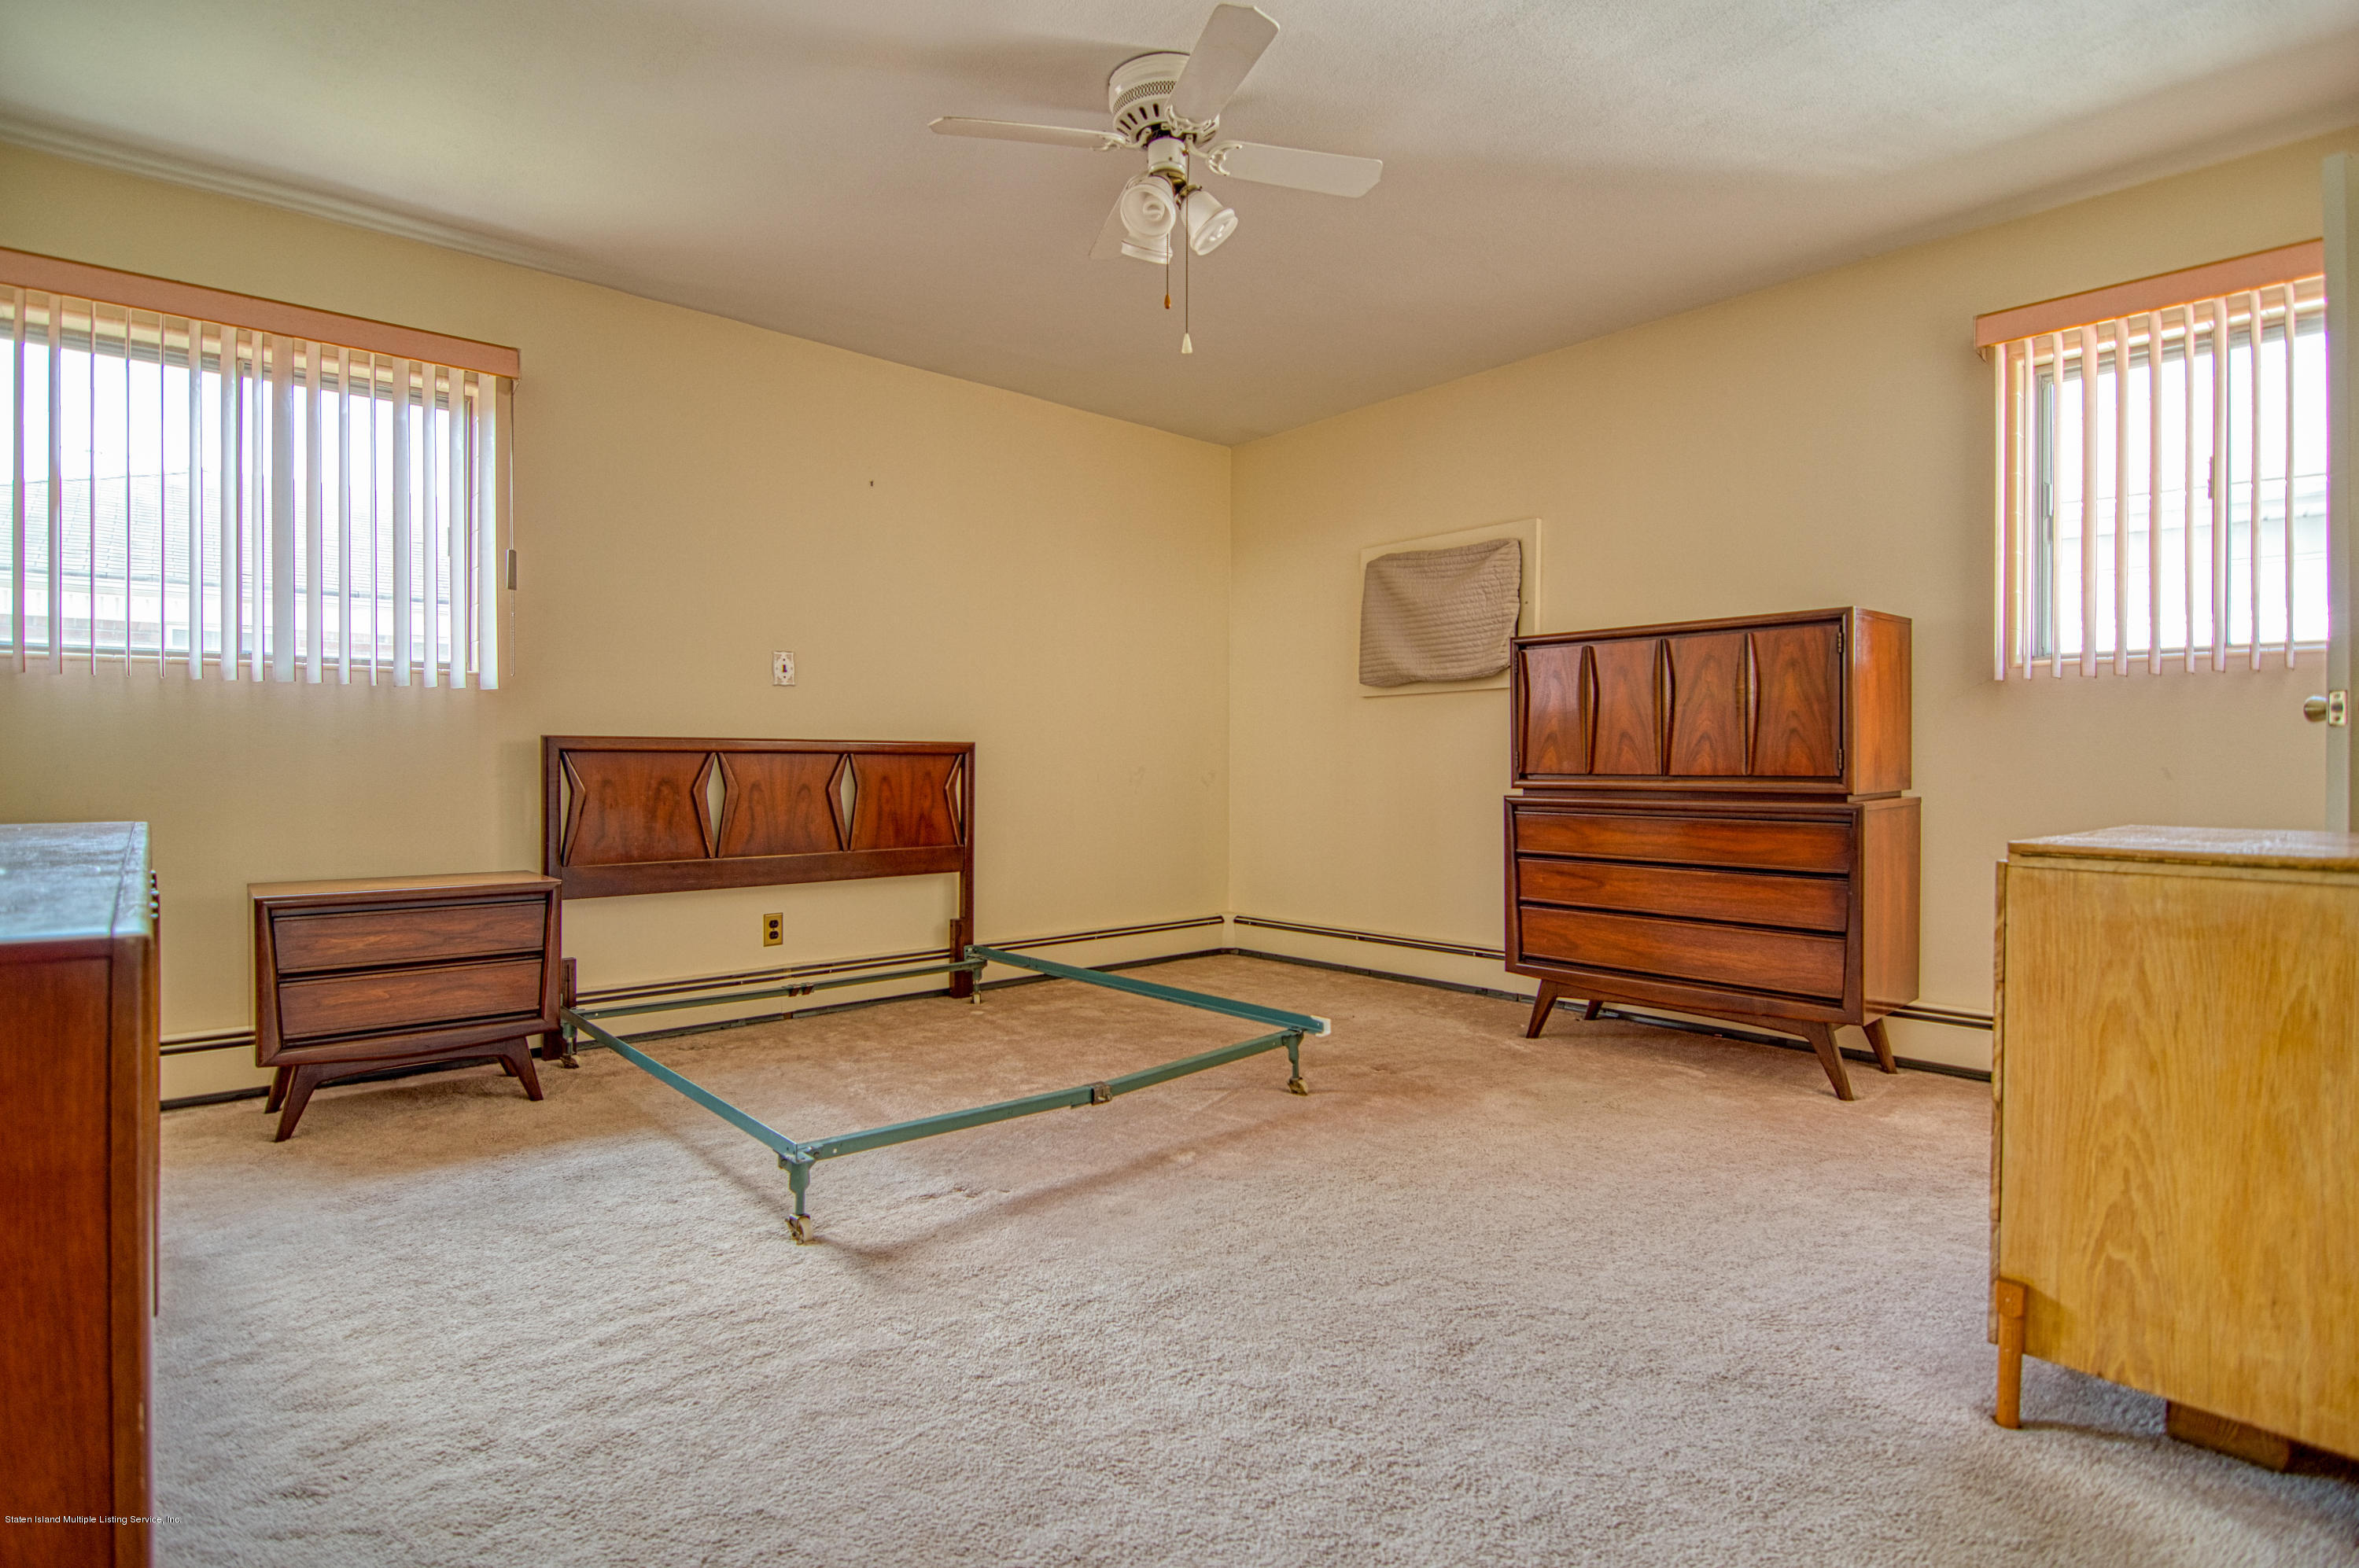 Single Family - Detached 124 Queen Street  Staten Island, NY 10314, MLS-1131413-13